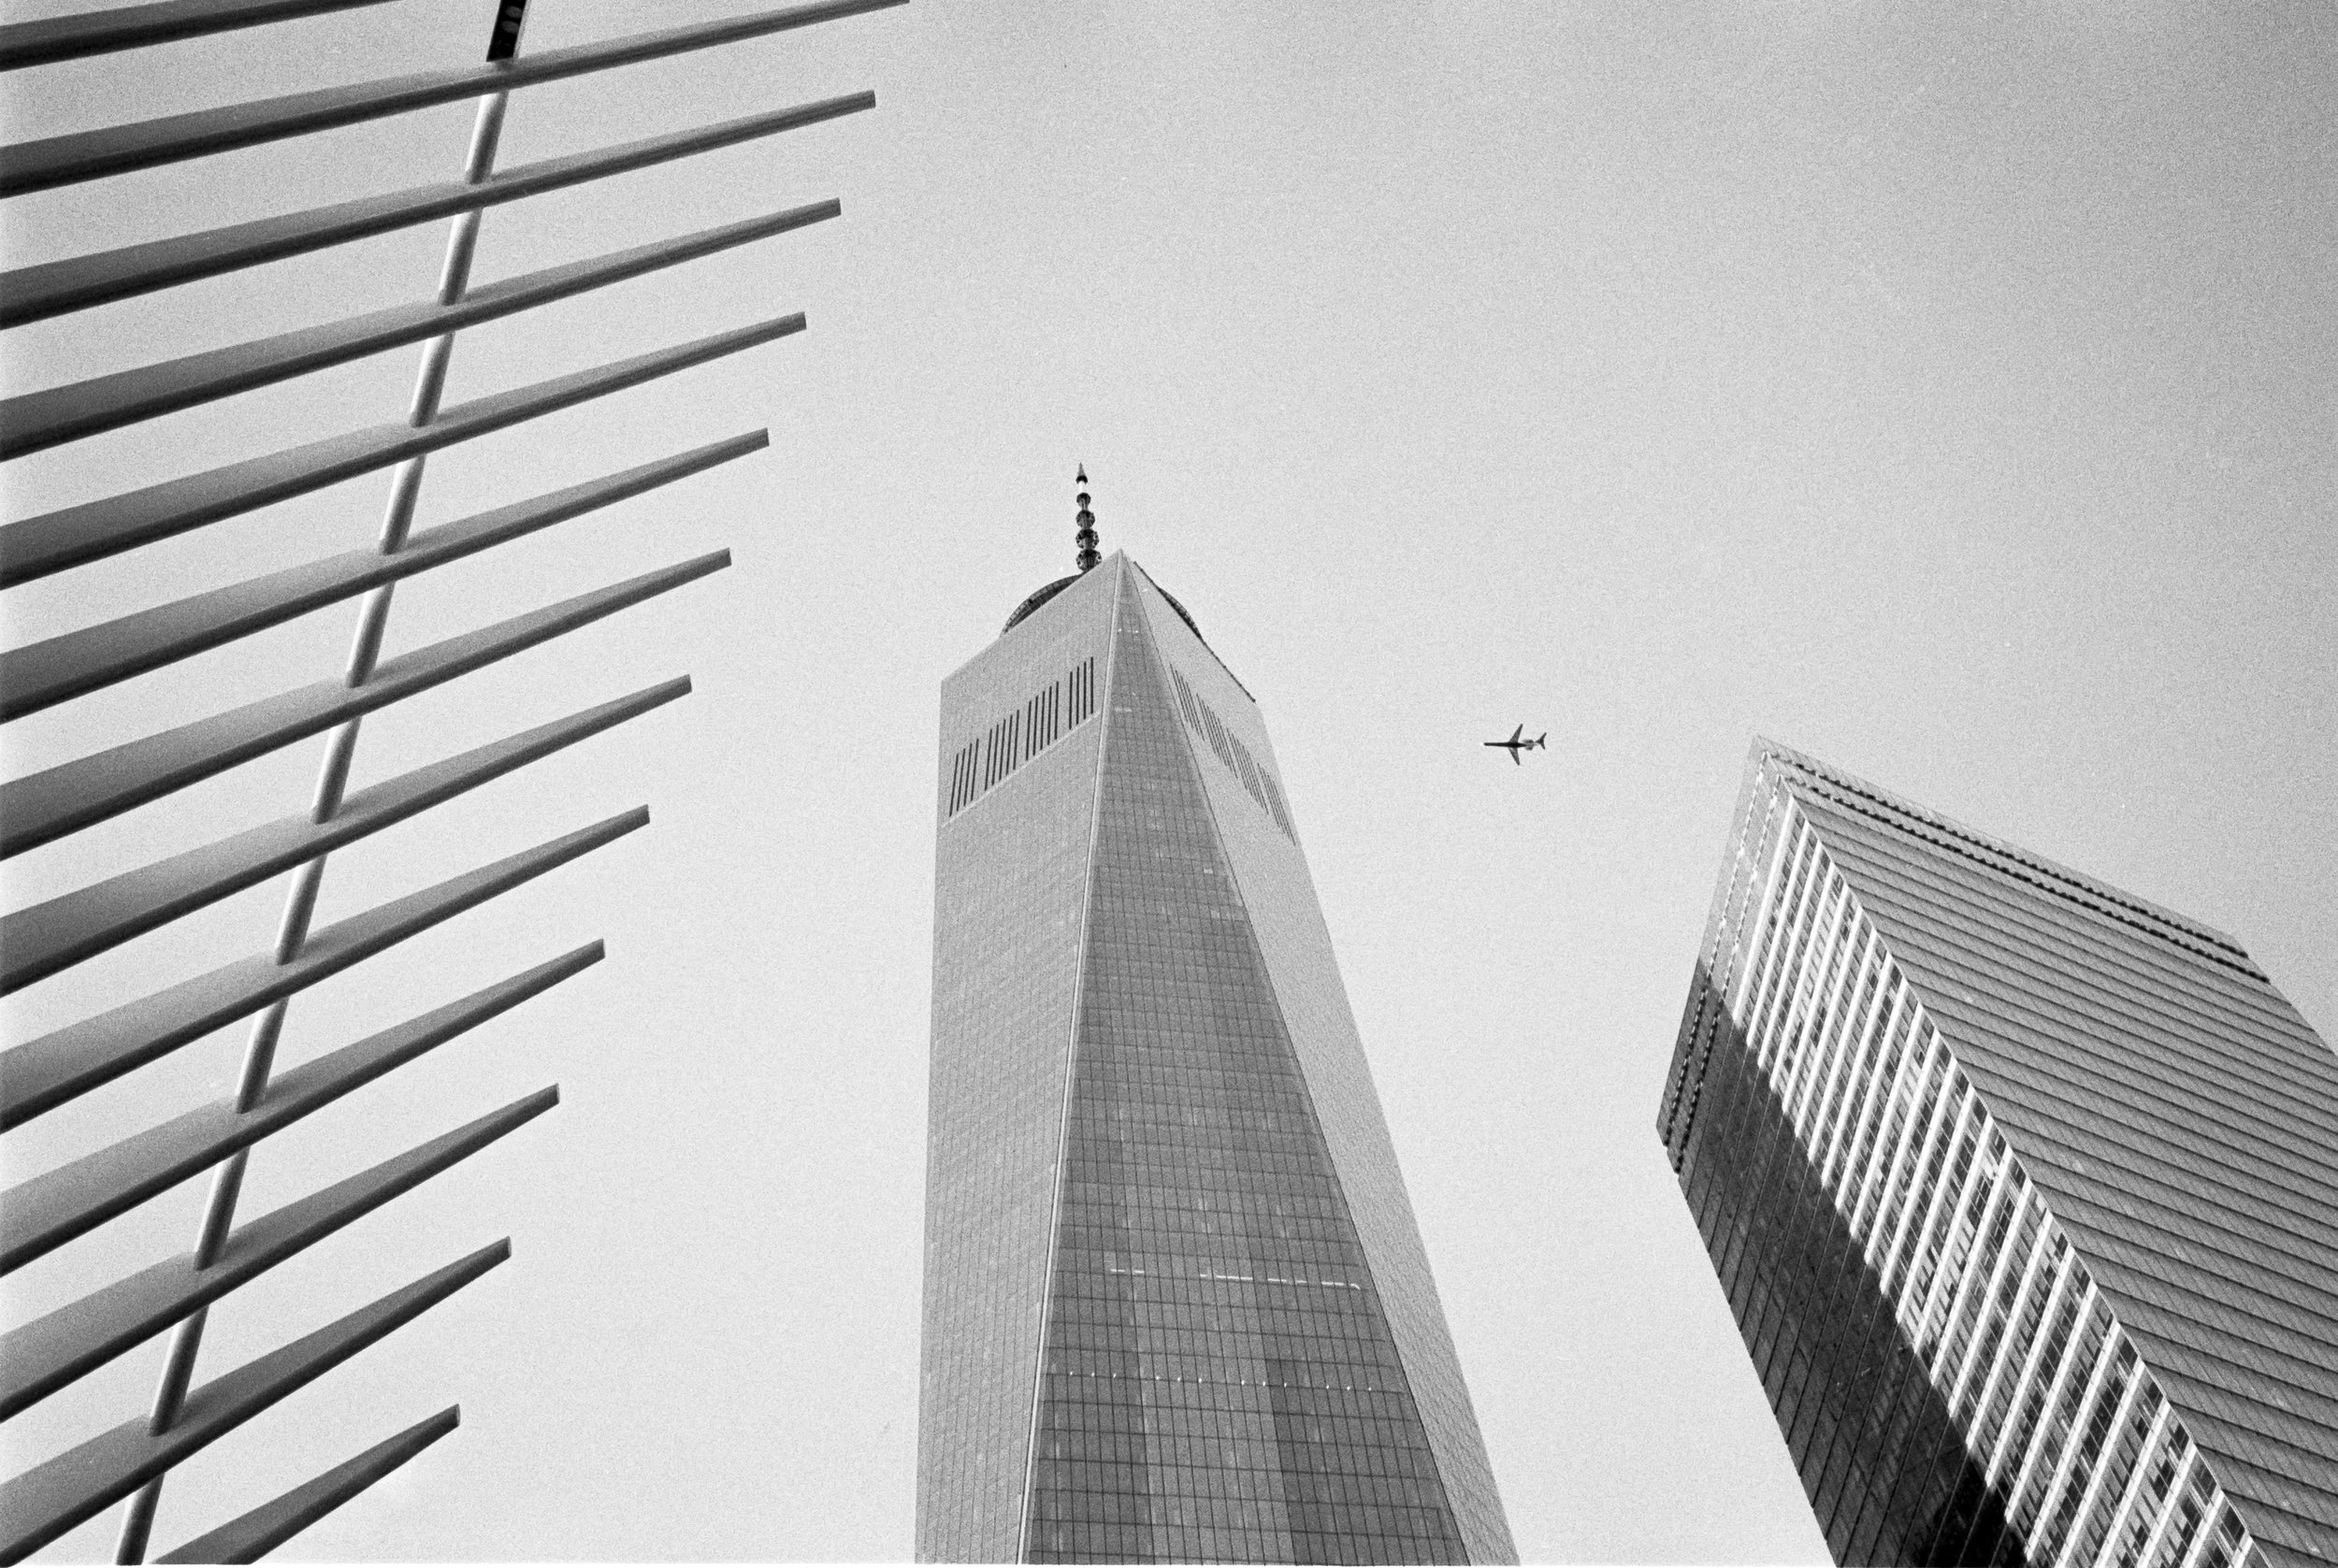 New_York_City_Freedom_Tower_35mm_Scan.jpg